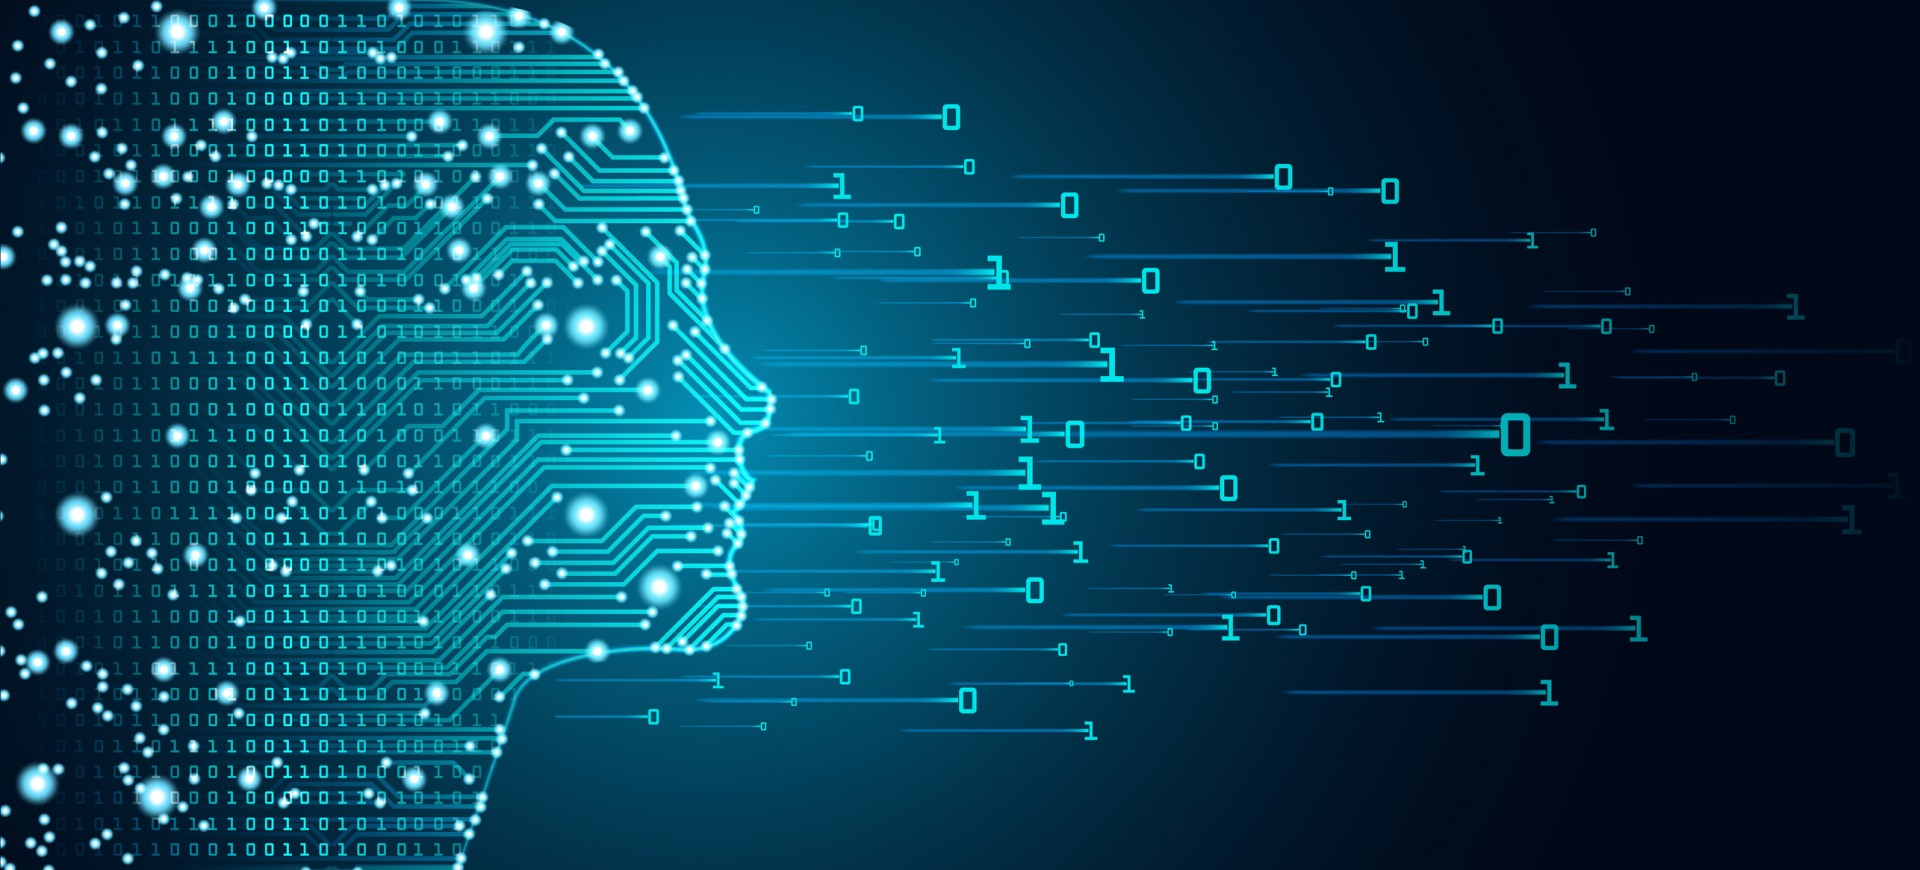 Technology Management Image: Why Do We Need Artificial Intelligence In Healthcare?